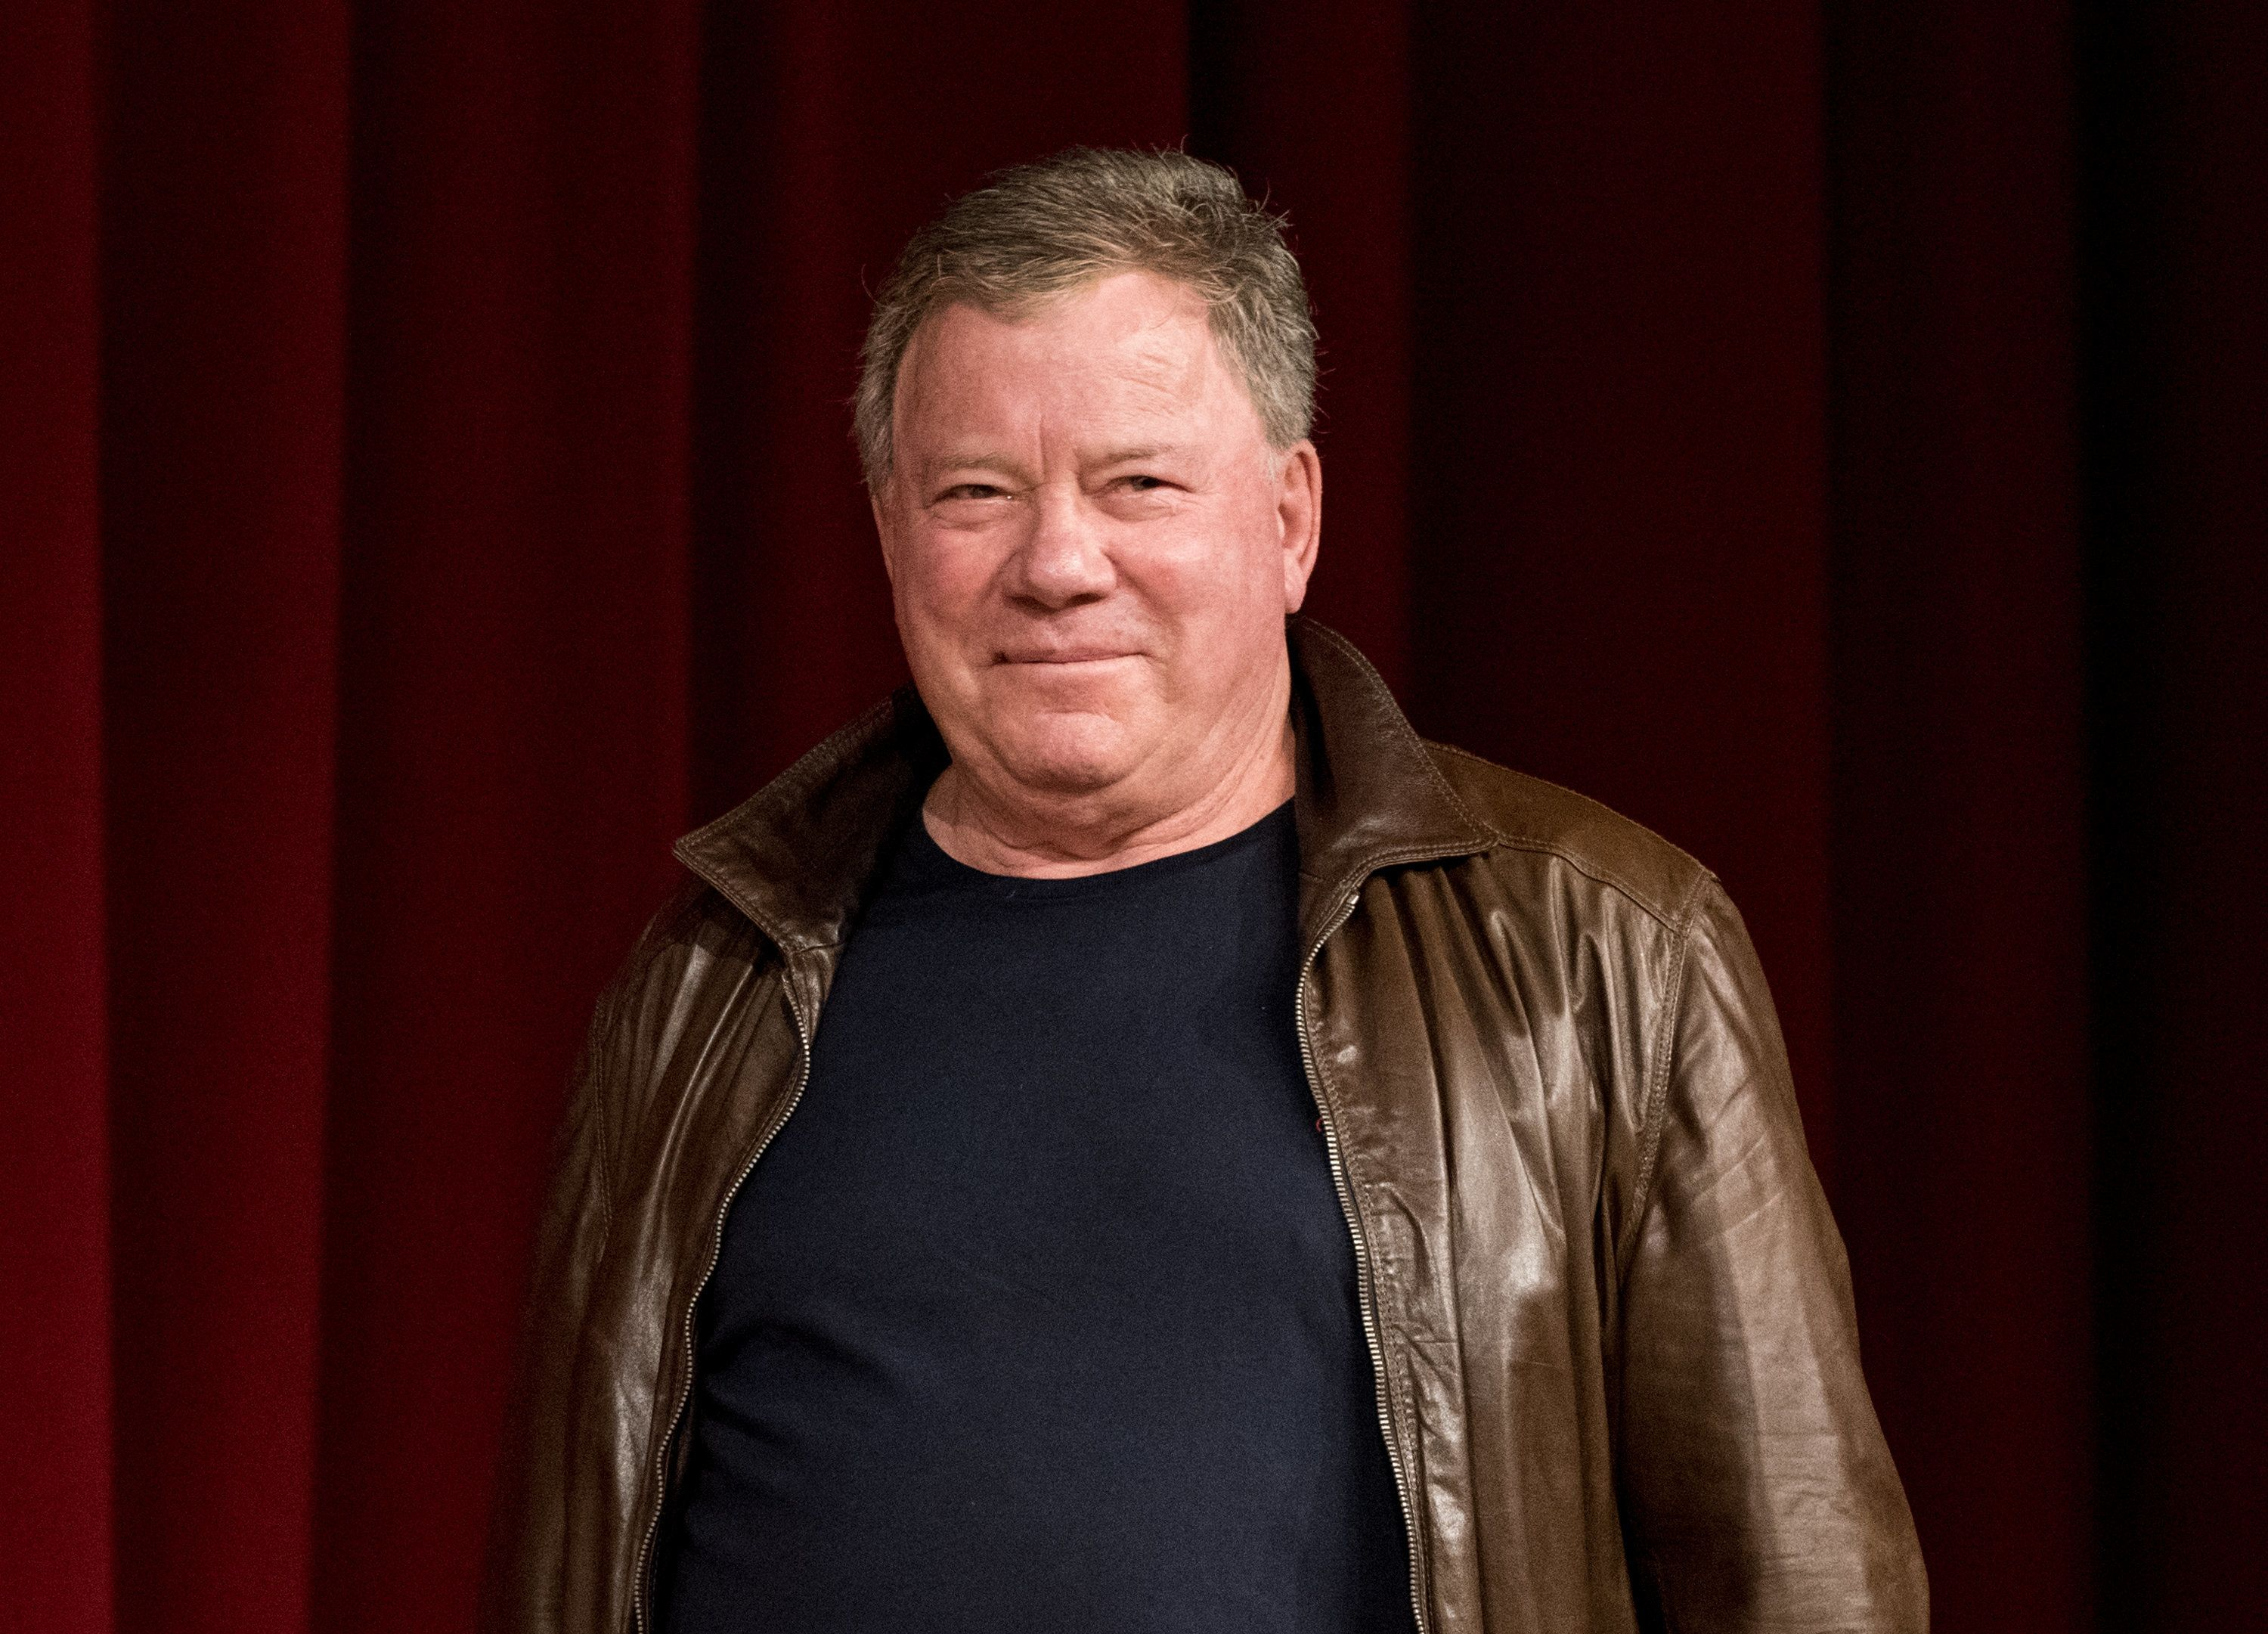 NEW YORK, NY - SEPTEMBER 04:  Actor William Shatner attends 'Star Trek Mission: New York' at The Jacob K. Javits Convention Center on September 4, 2016 in New York City.  (Photo by Noam Galai/WireImage)